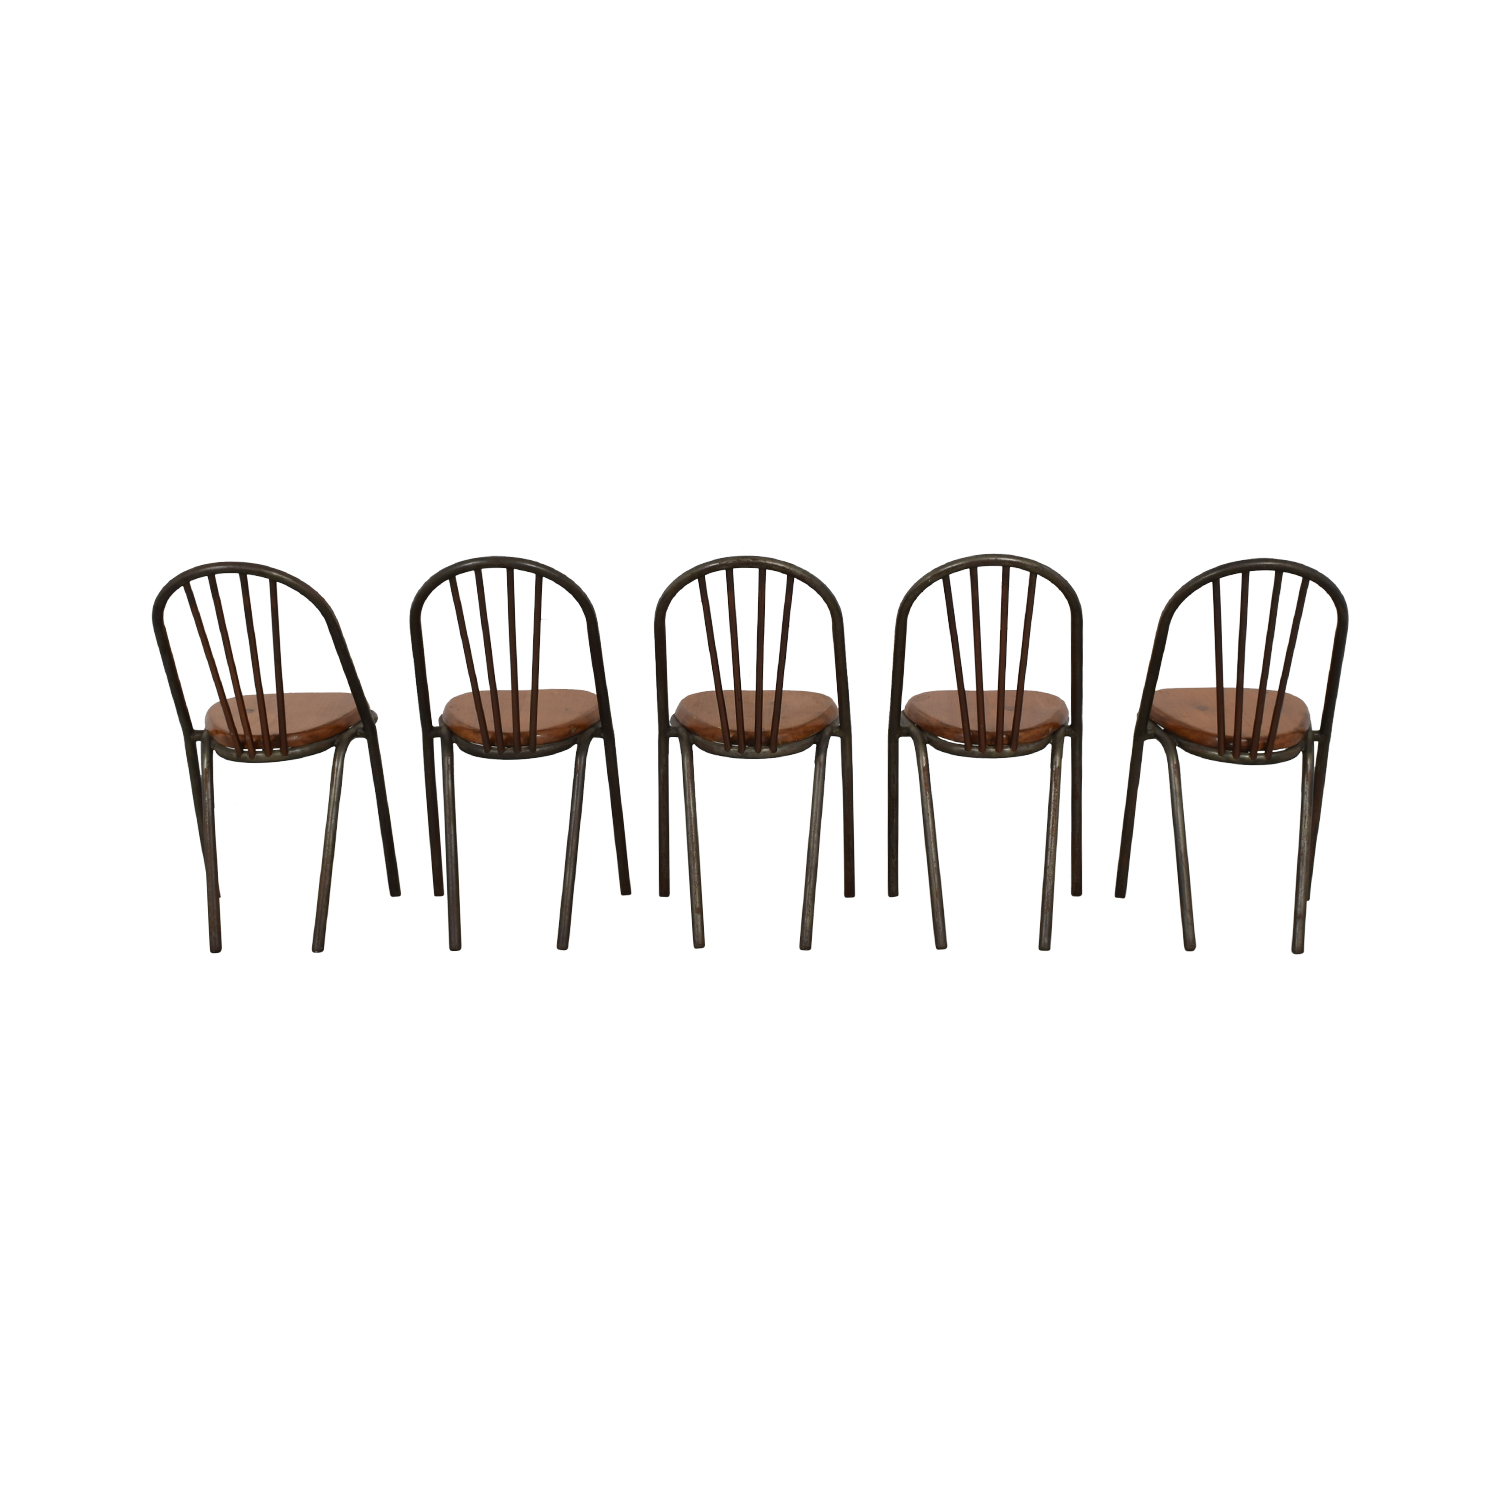 Furniture Masters Furniture Masters Wood and Metal Dining Chairs for sale